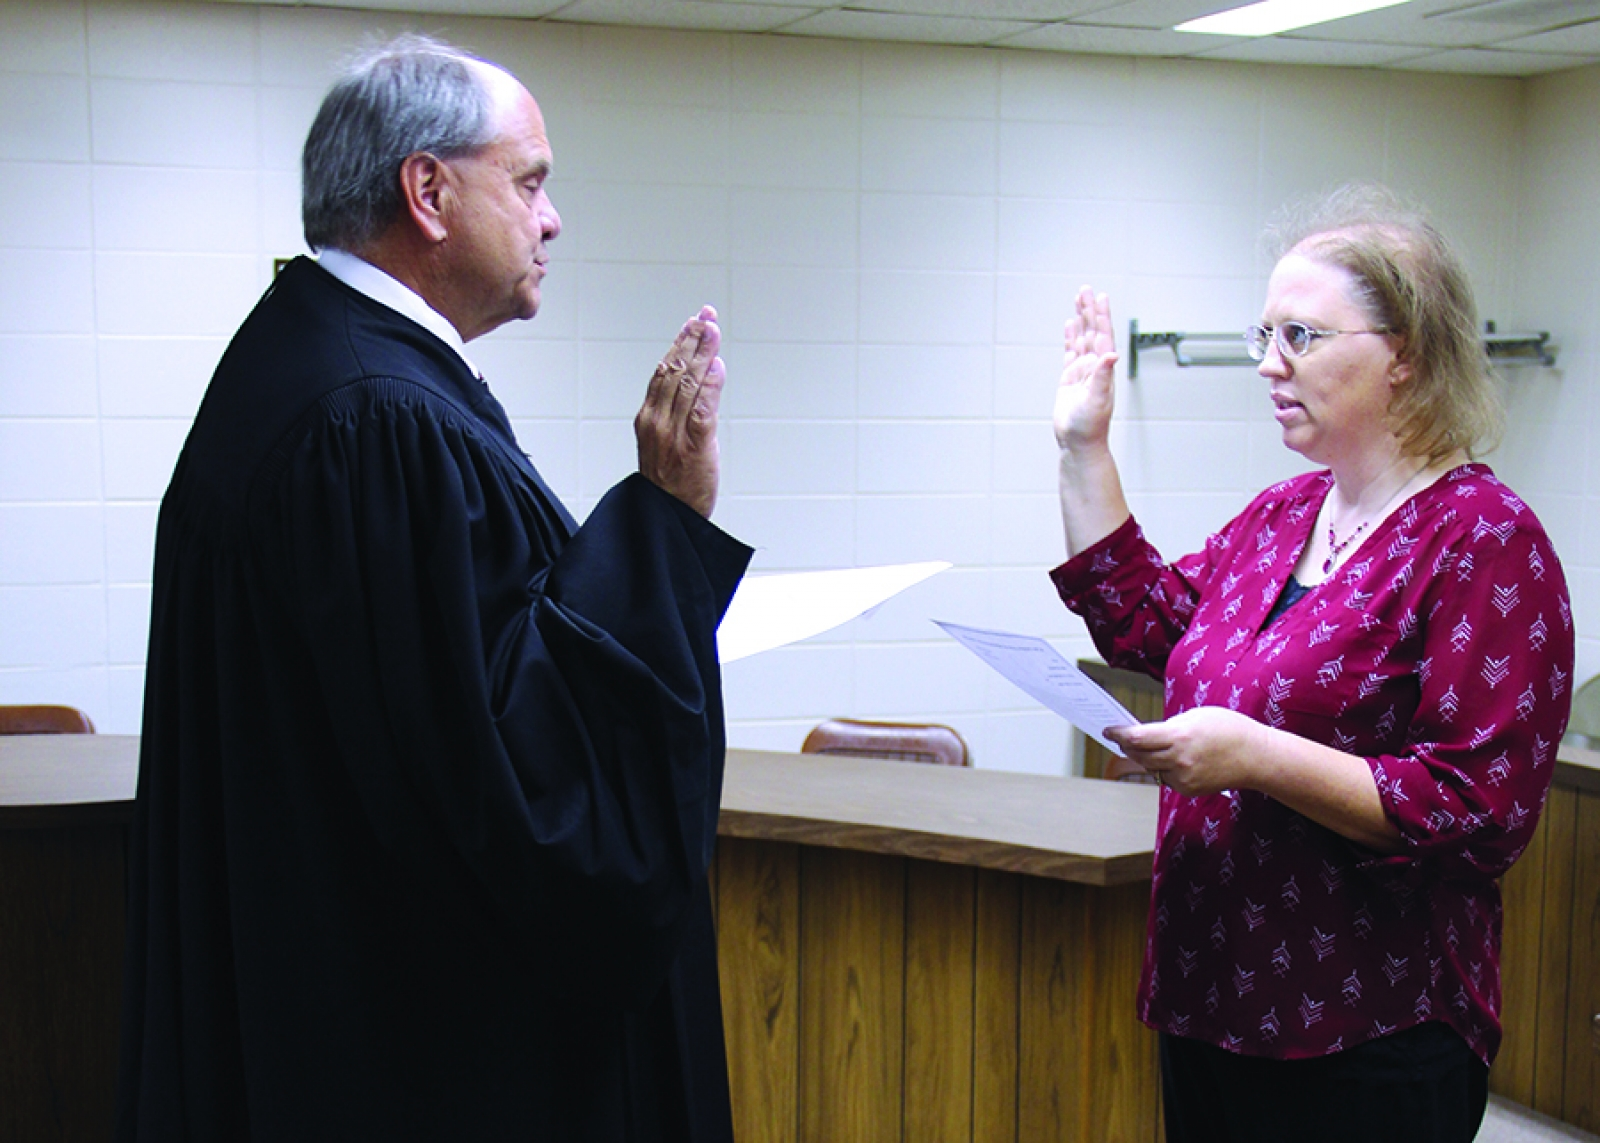 Commissioners appoint Tina Skinner as County Assessor